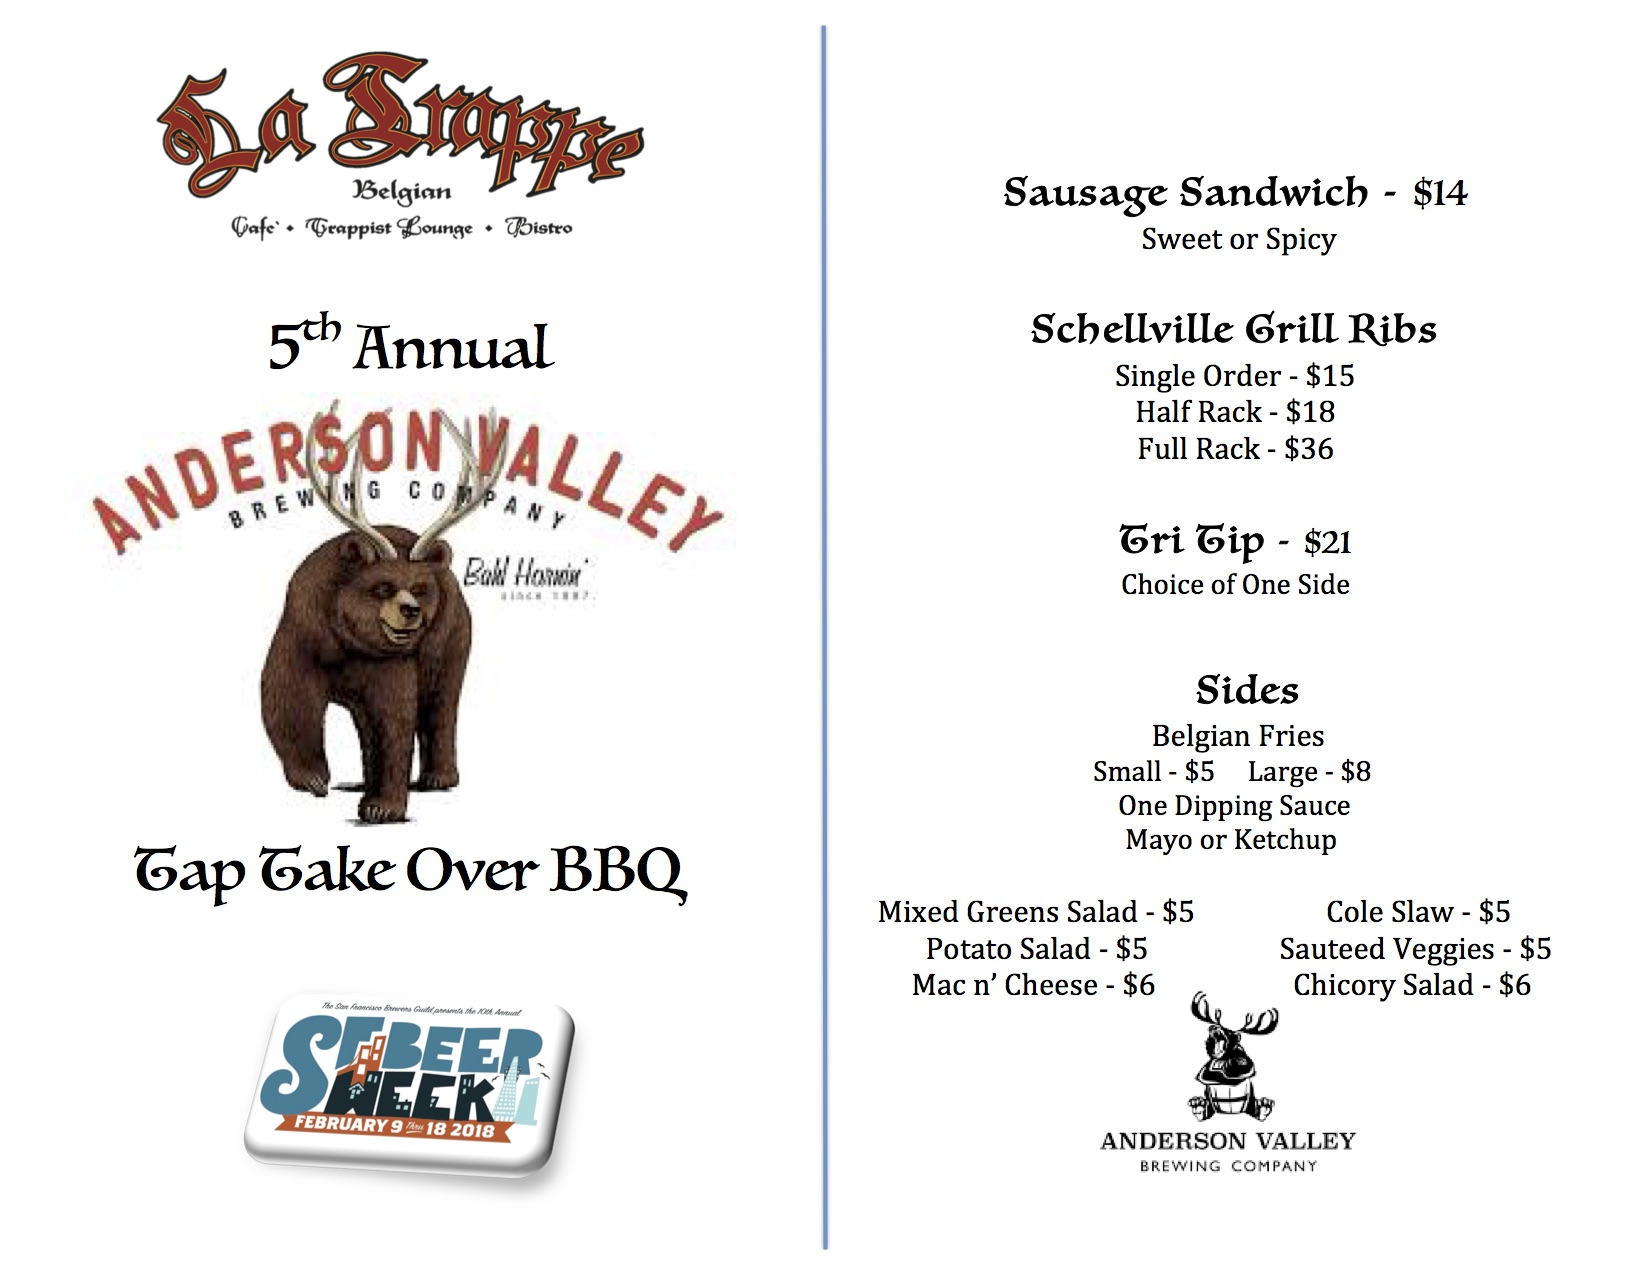 ANDERSON VALLEY TAP TAKEOVER BBQ – Belgian Bistro & Trappist Lounge